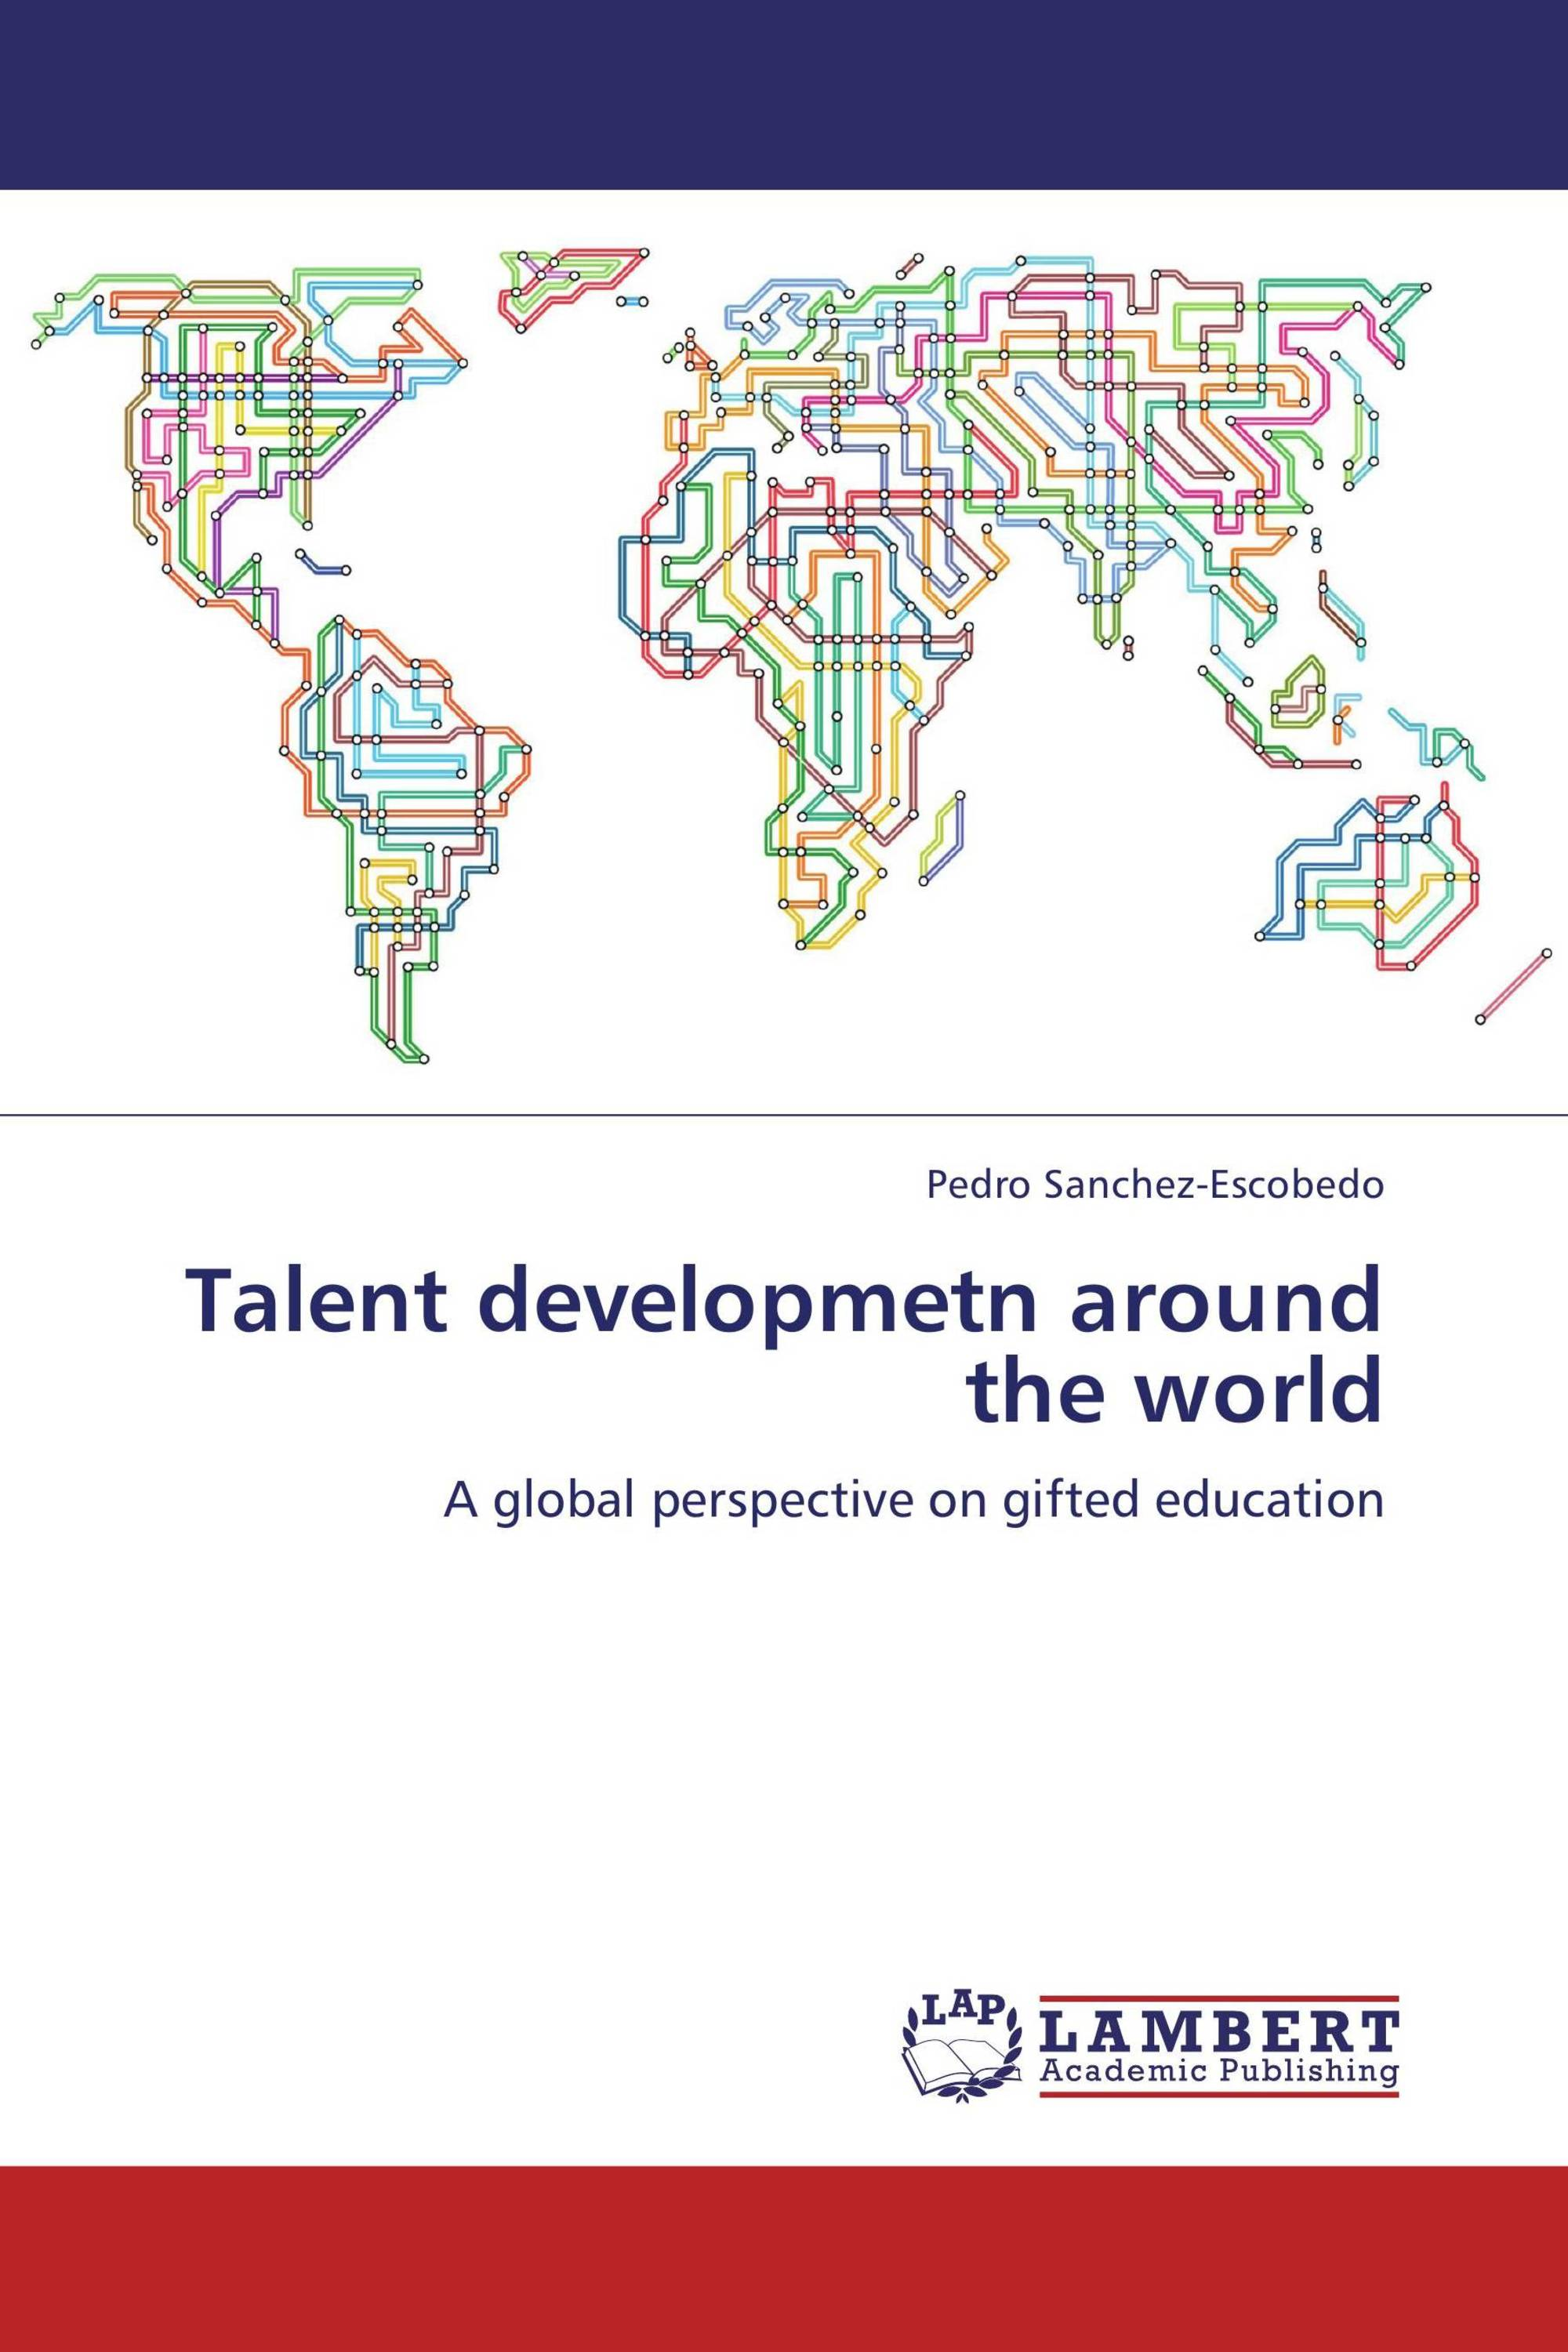 Talent developmetn around the world